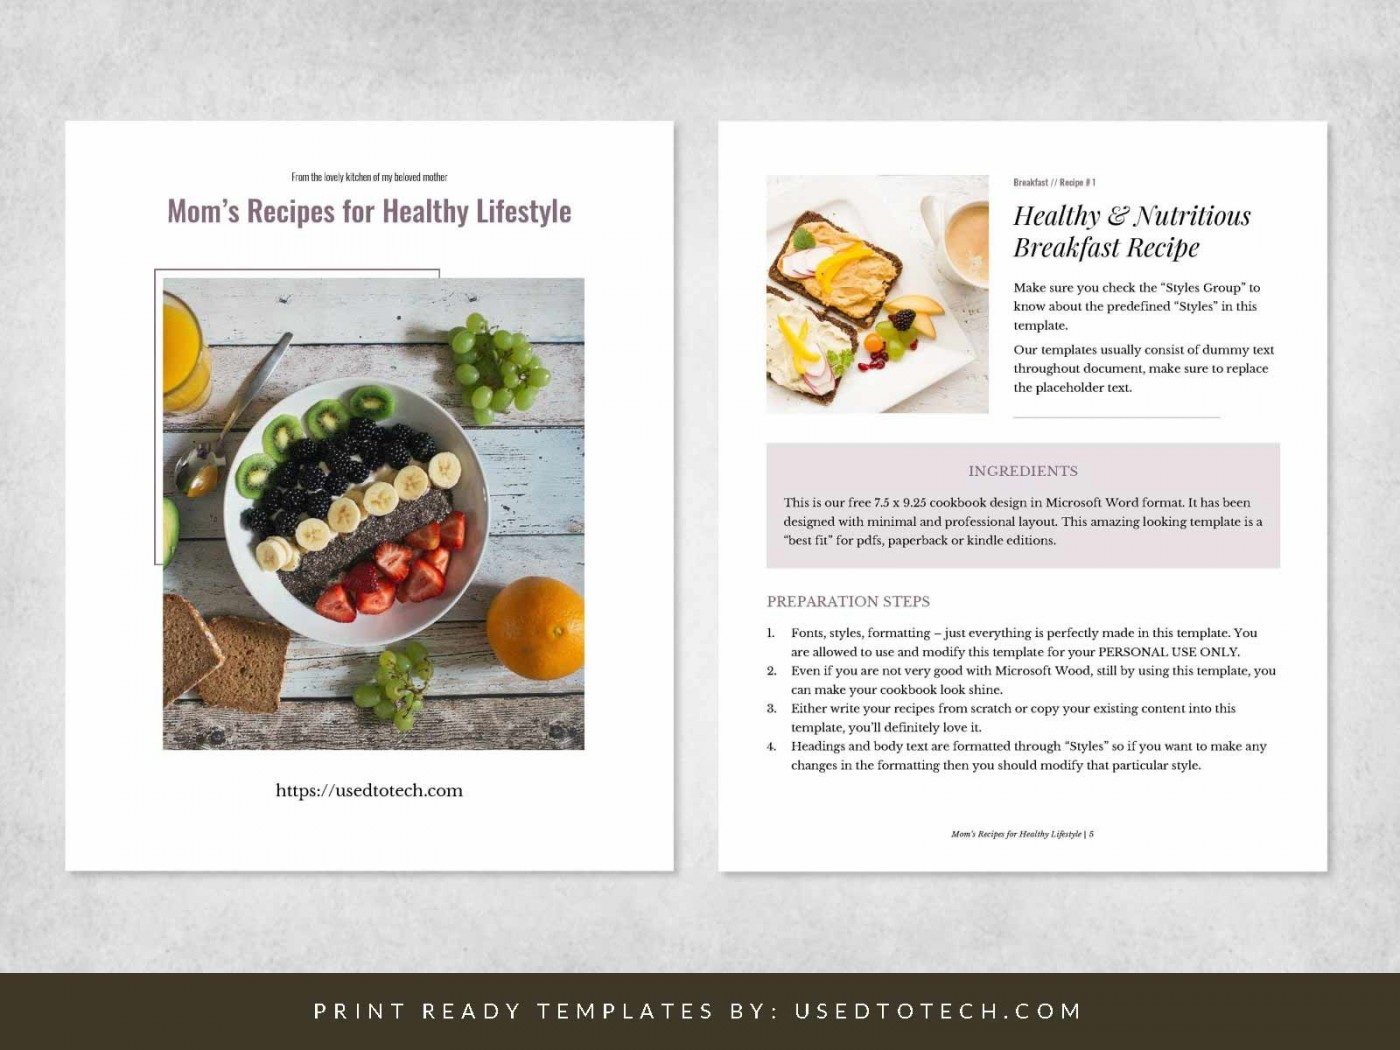 004 Surprising Make Your Own Cookbook Template Free High Resolution  Download1400